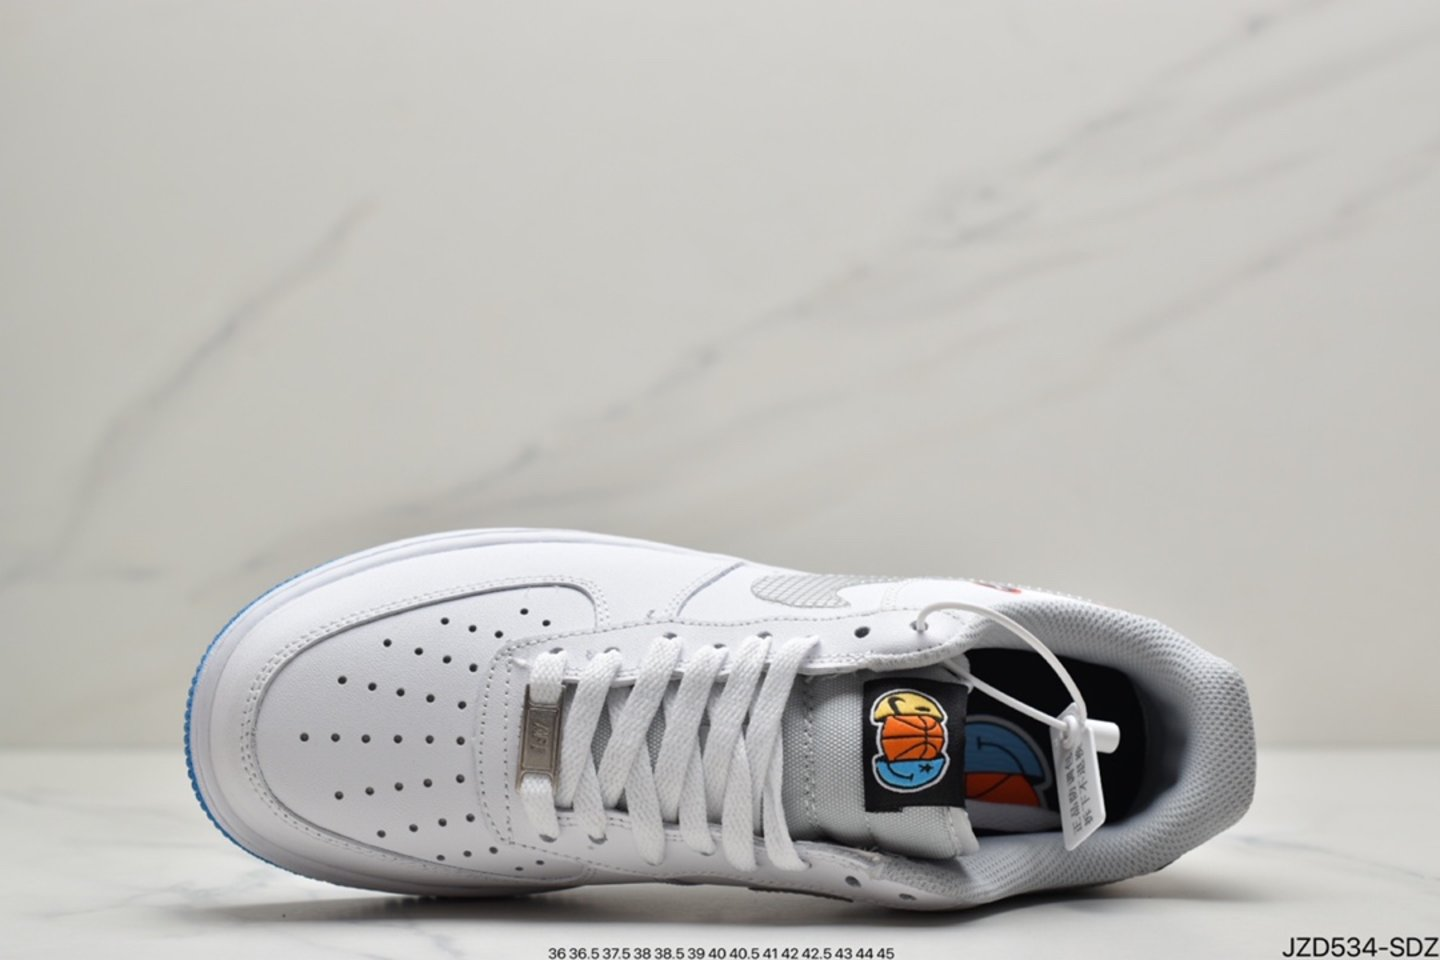 """2021 Nike Air Force 1 Low """"Yin Yang"""" White Multicolor Wolf Gray DM8088-100 shoelace"""